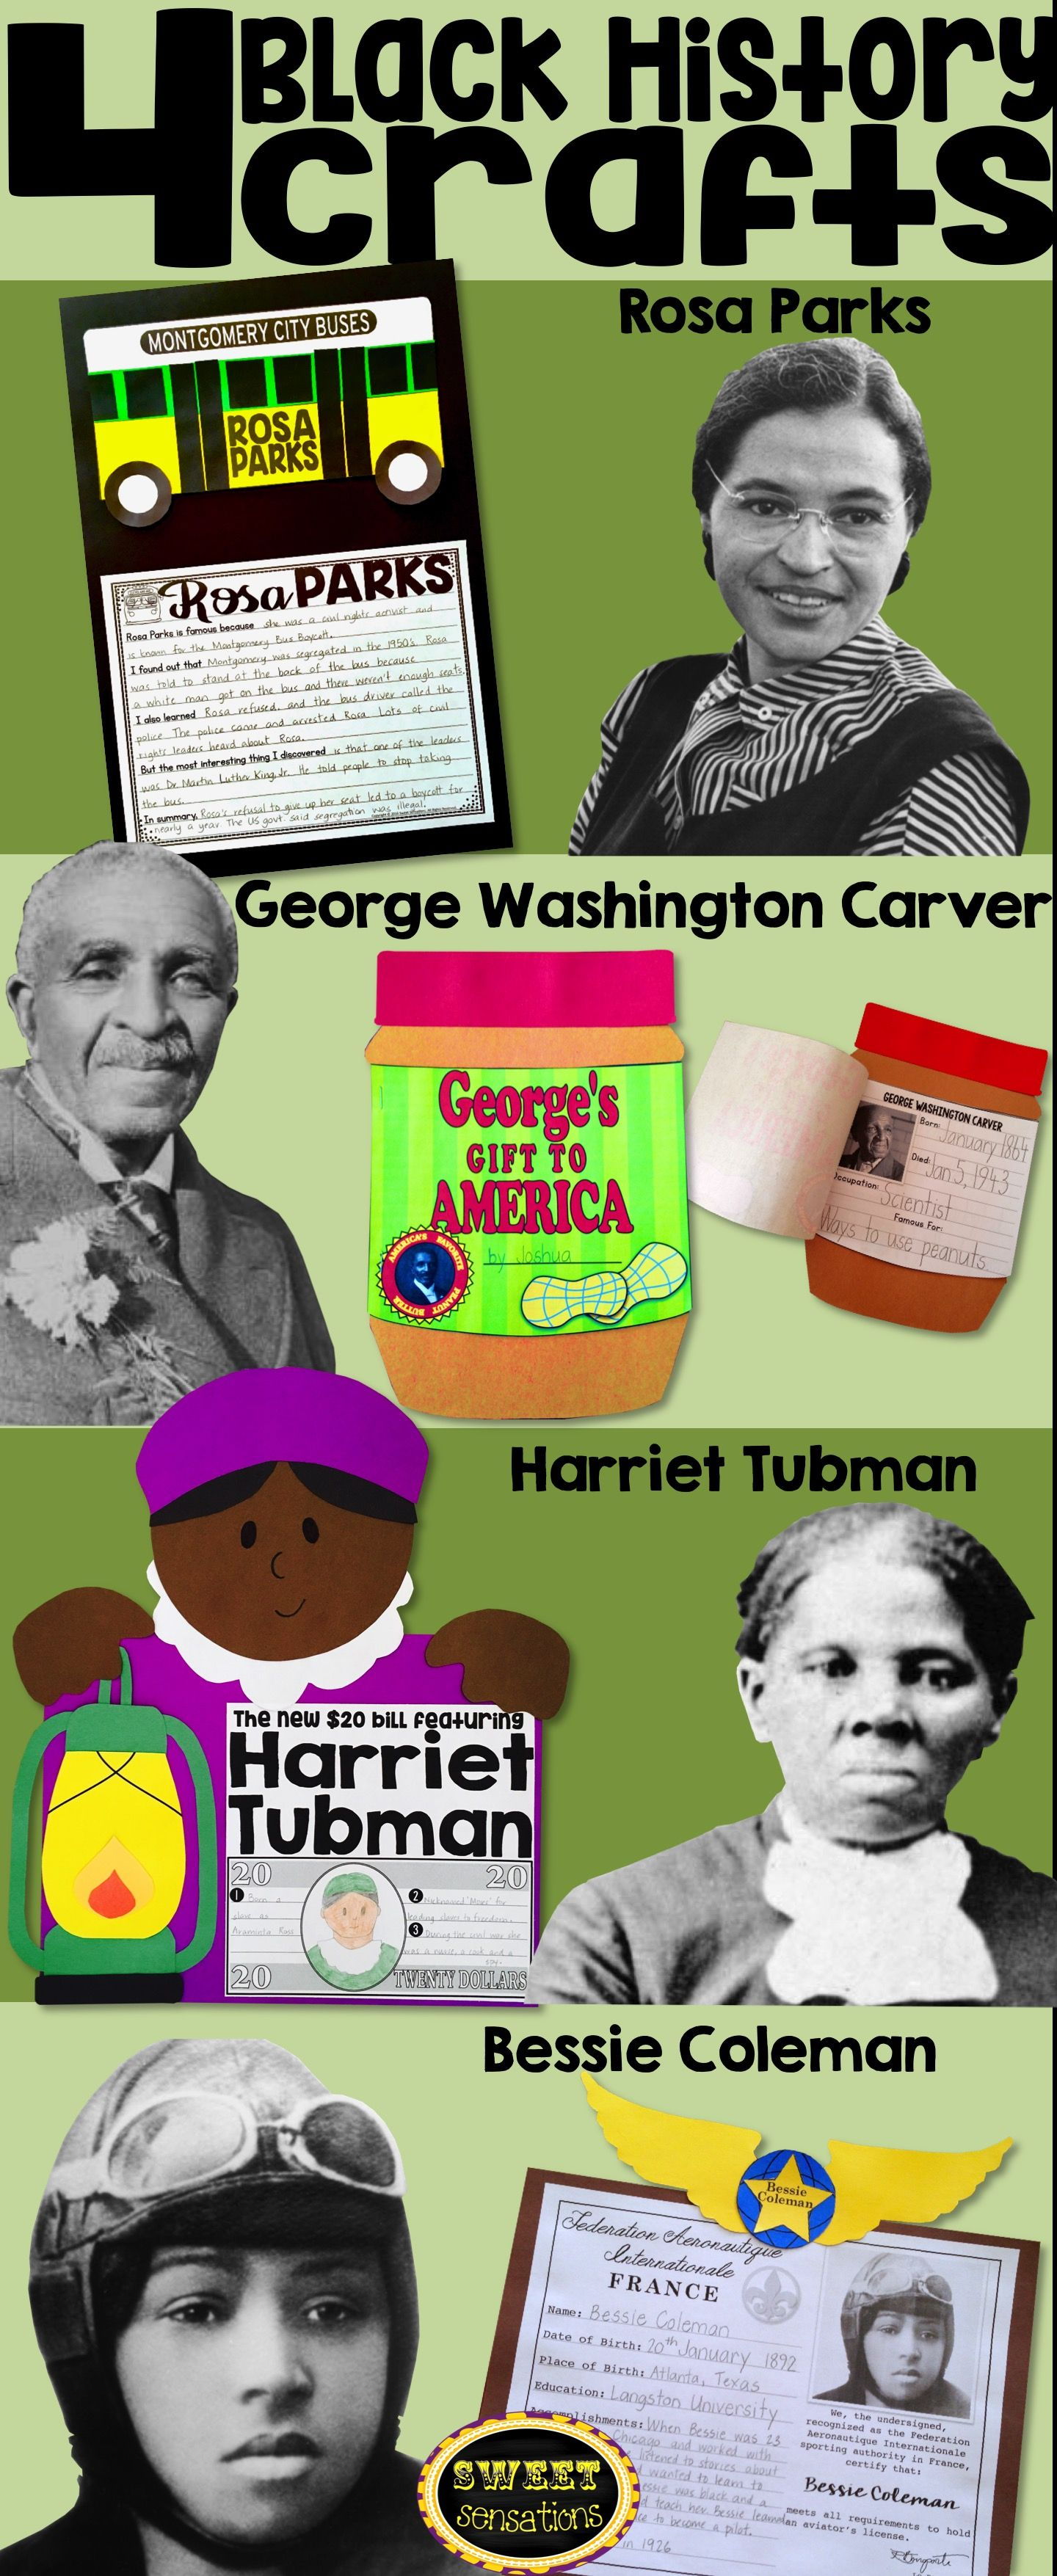 Rosa Parks George Washington Carver Bessie Coleman